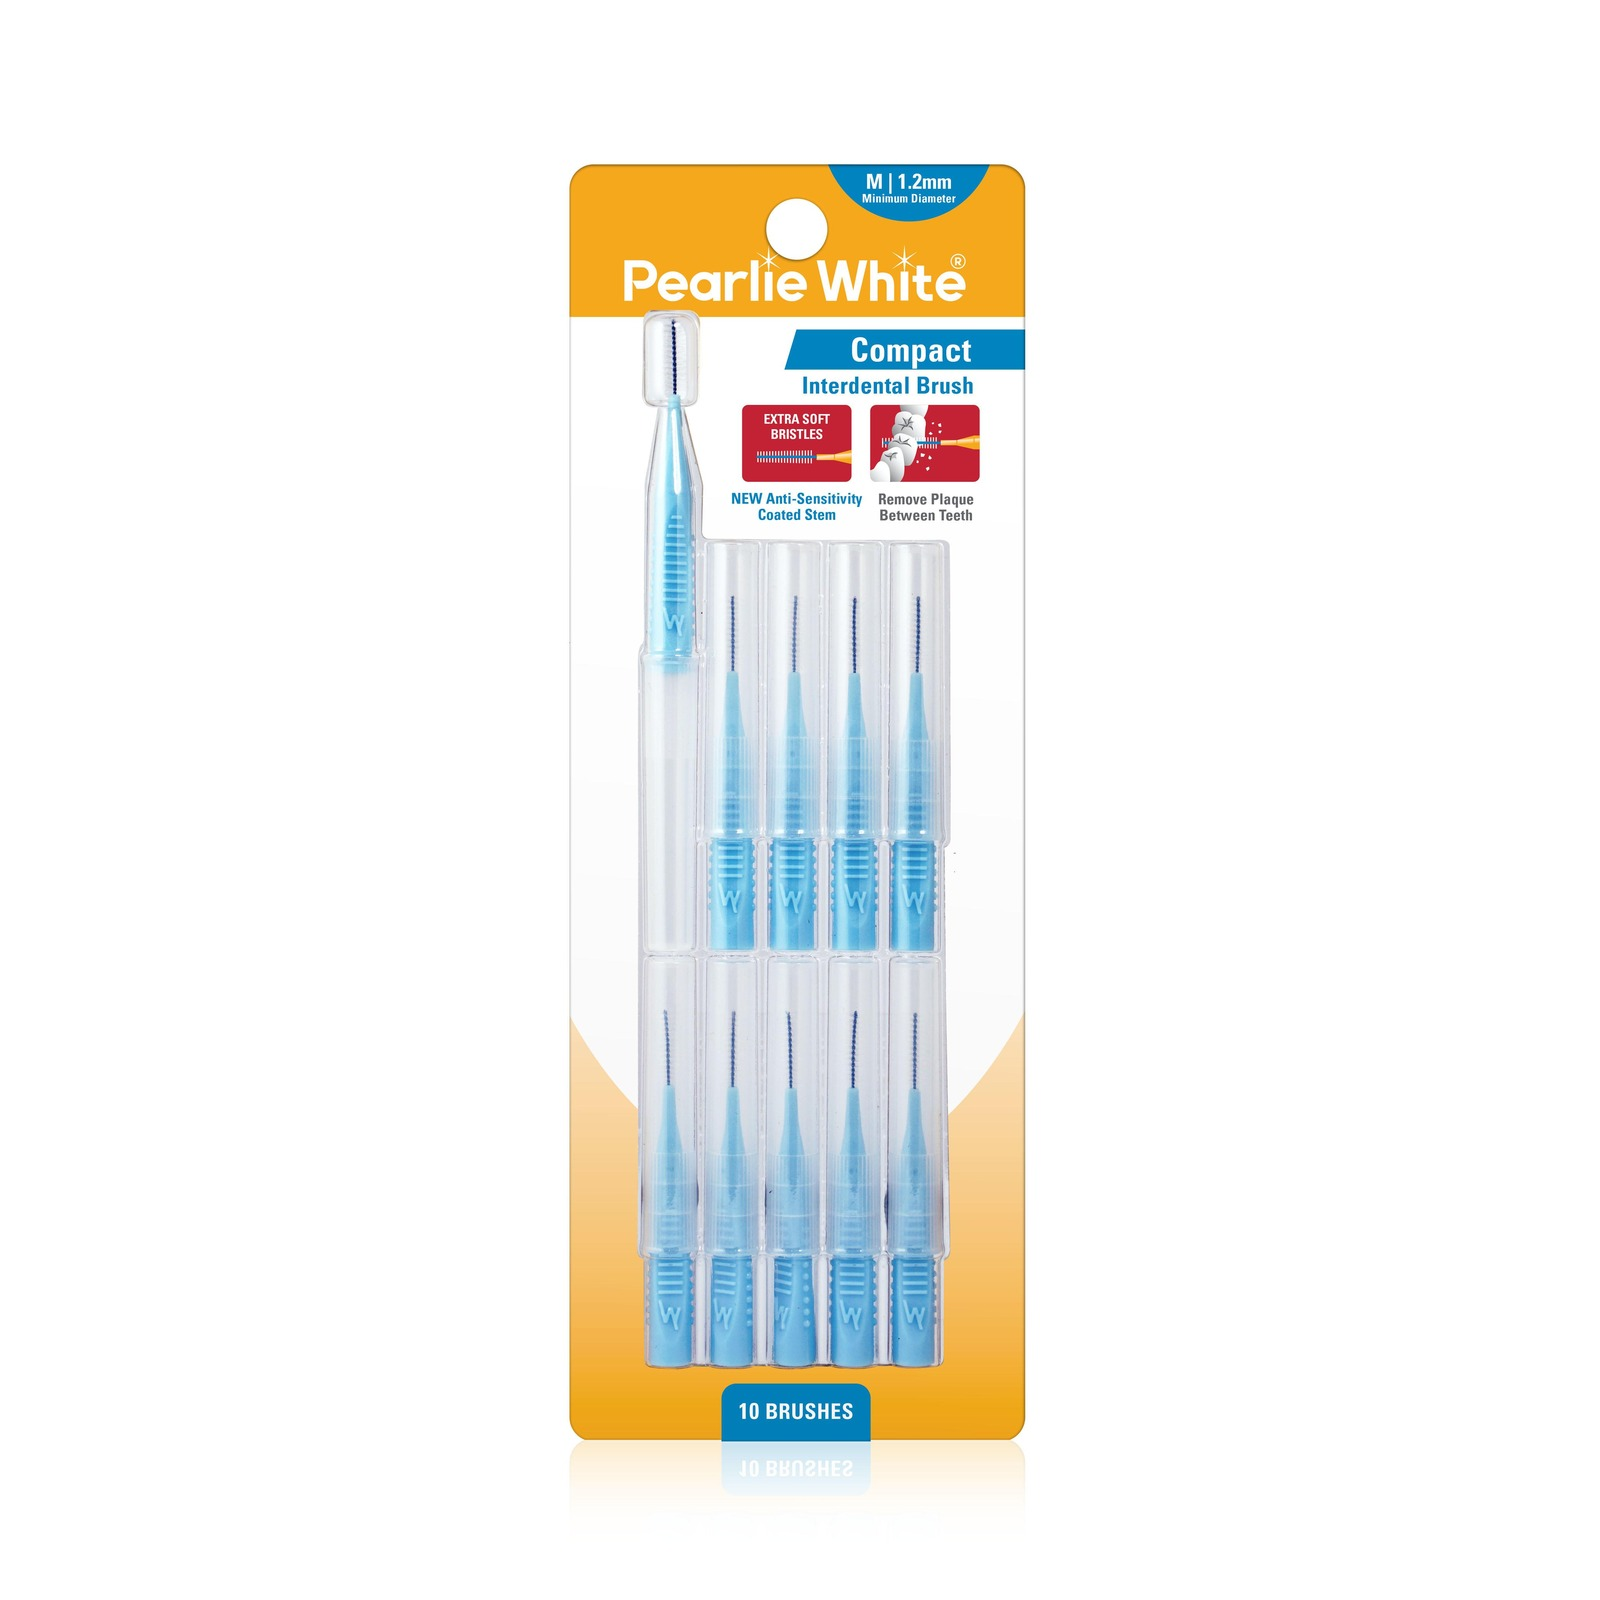 Pearlie White Compact Interdental Brushes M 1.2mm